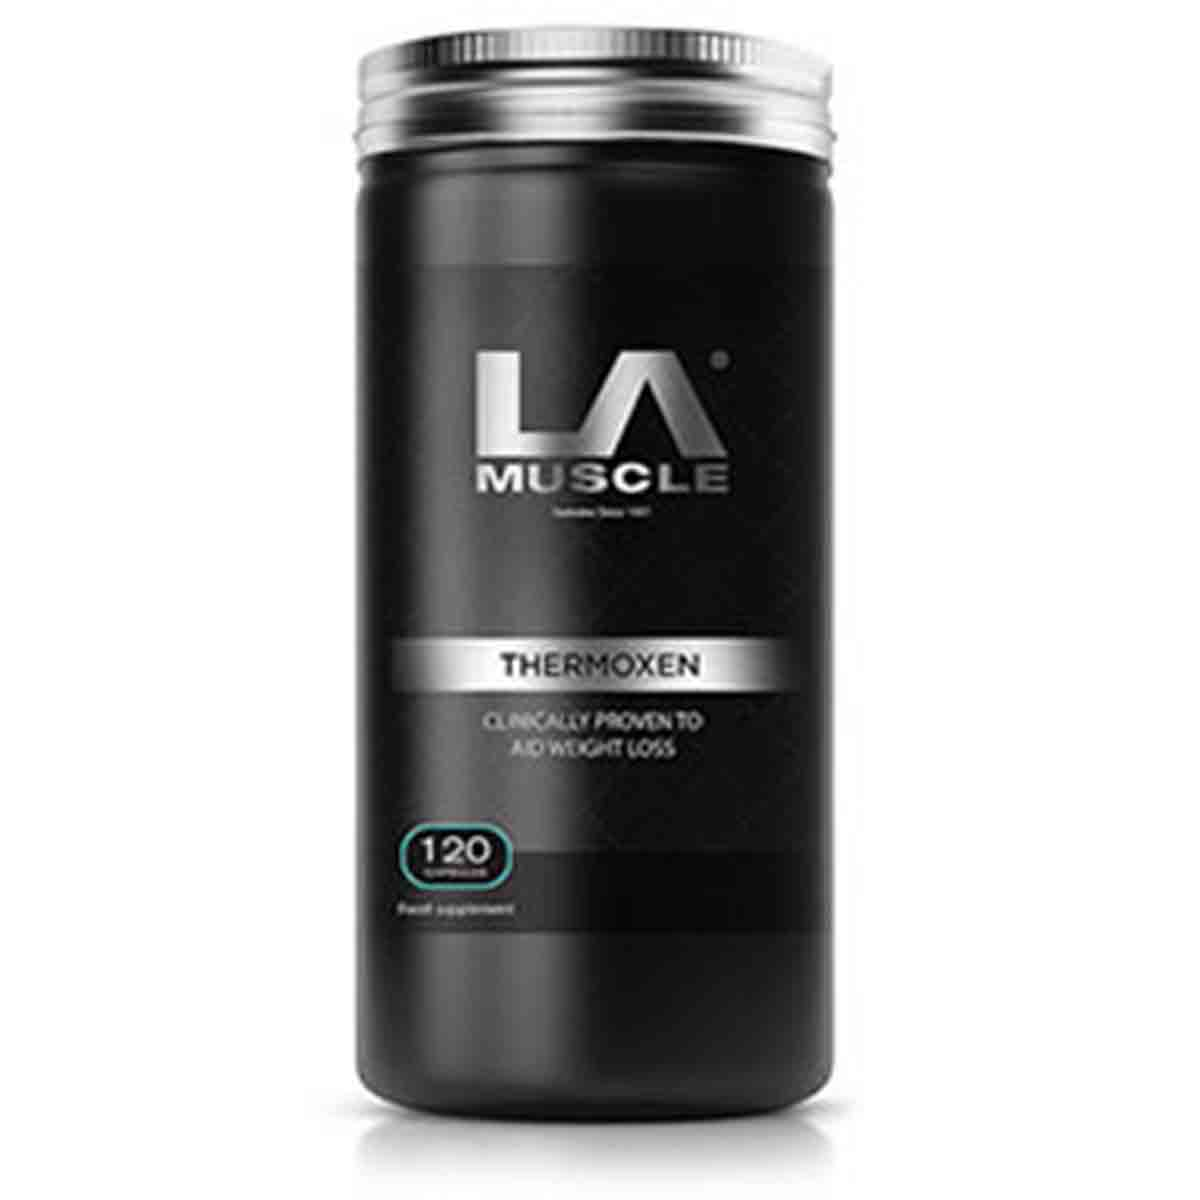 LA Muscle Thermoxen